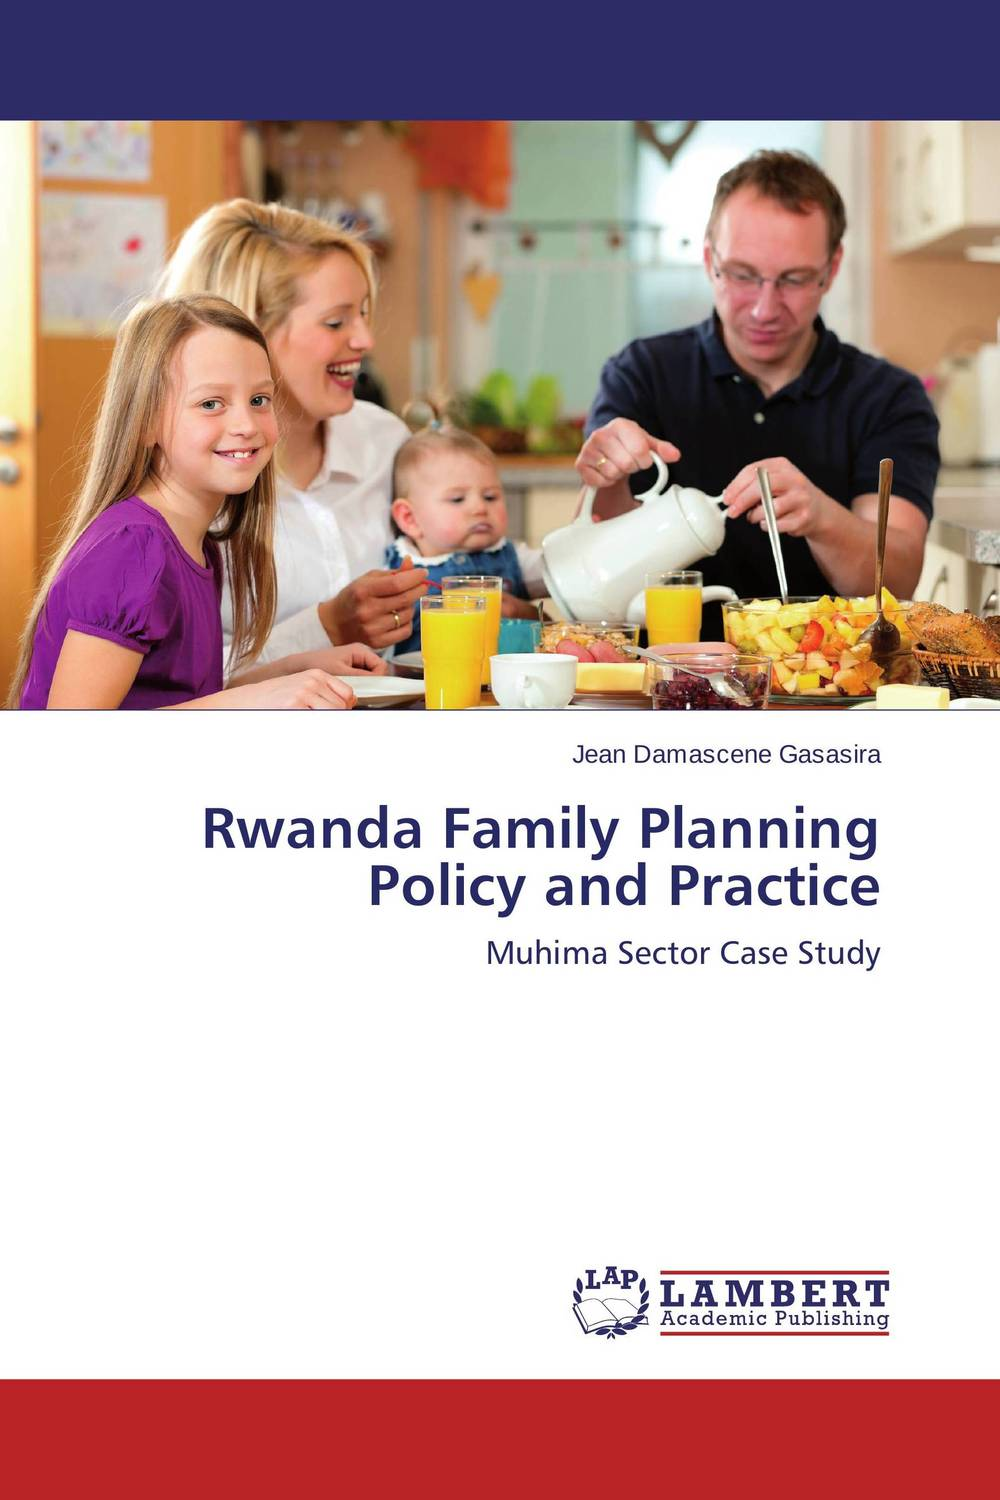 Rwanda Family Planning Policy and Practice statistical techniques for family planning measures